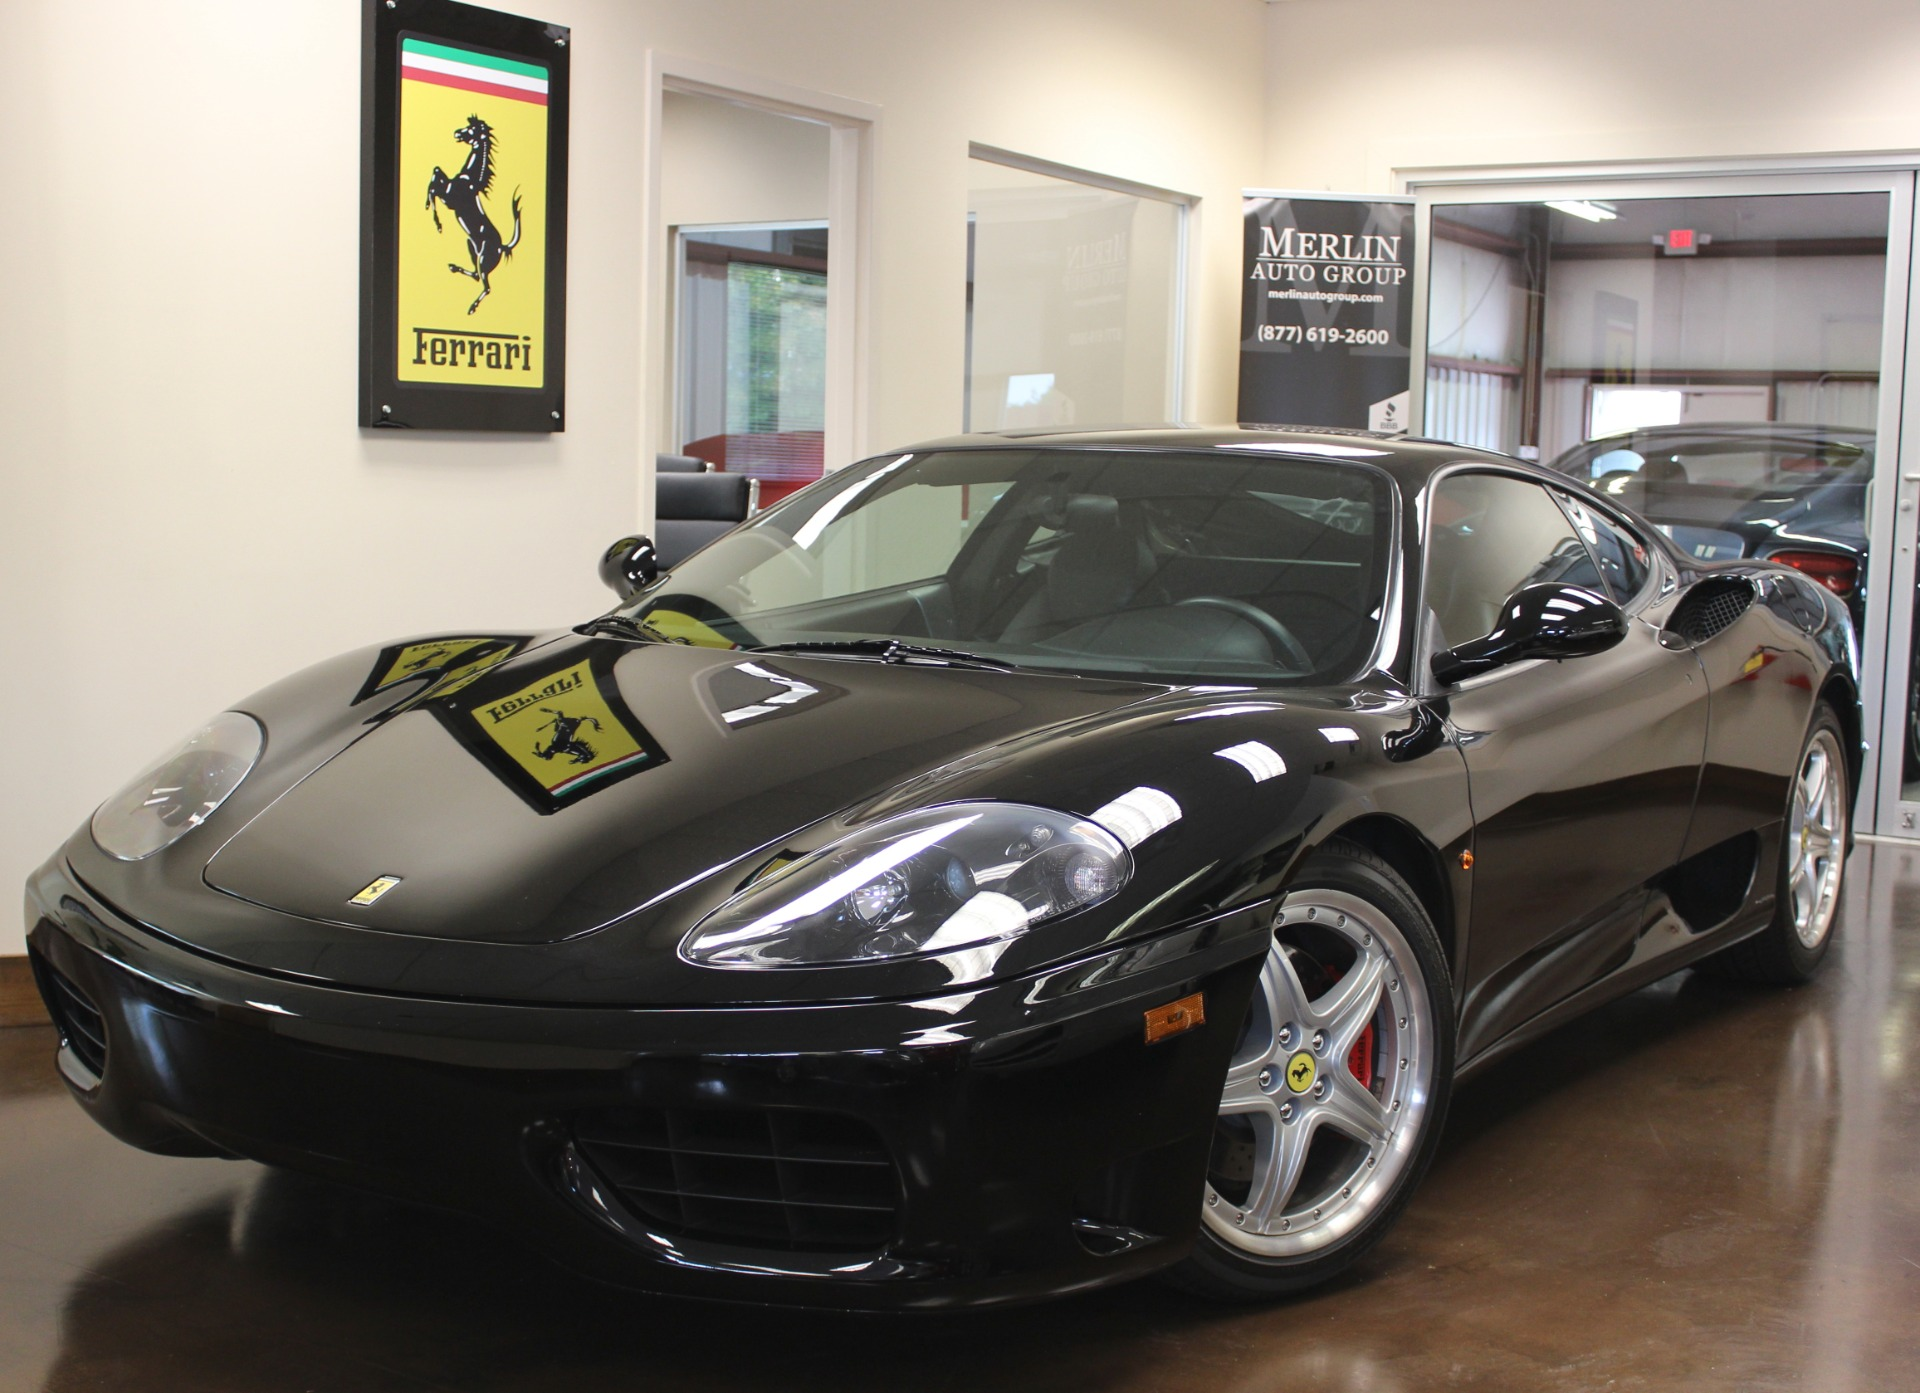 used 2003 ferrari 360 modena stock p3204 ultra luxury car from merlin auto group. Black Bedroom Furniture Sets. Home Design Ideas